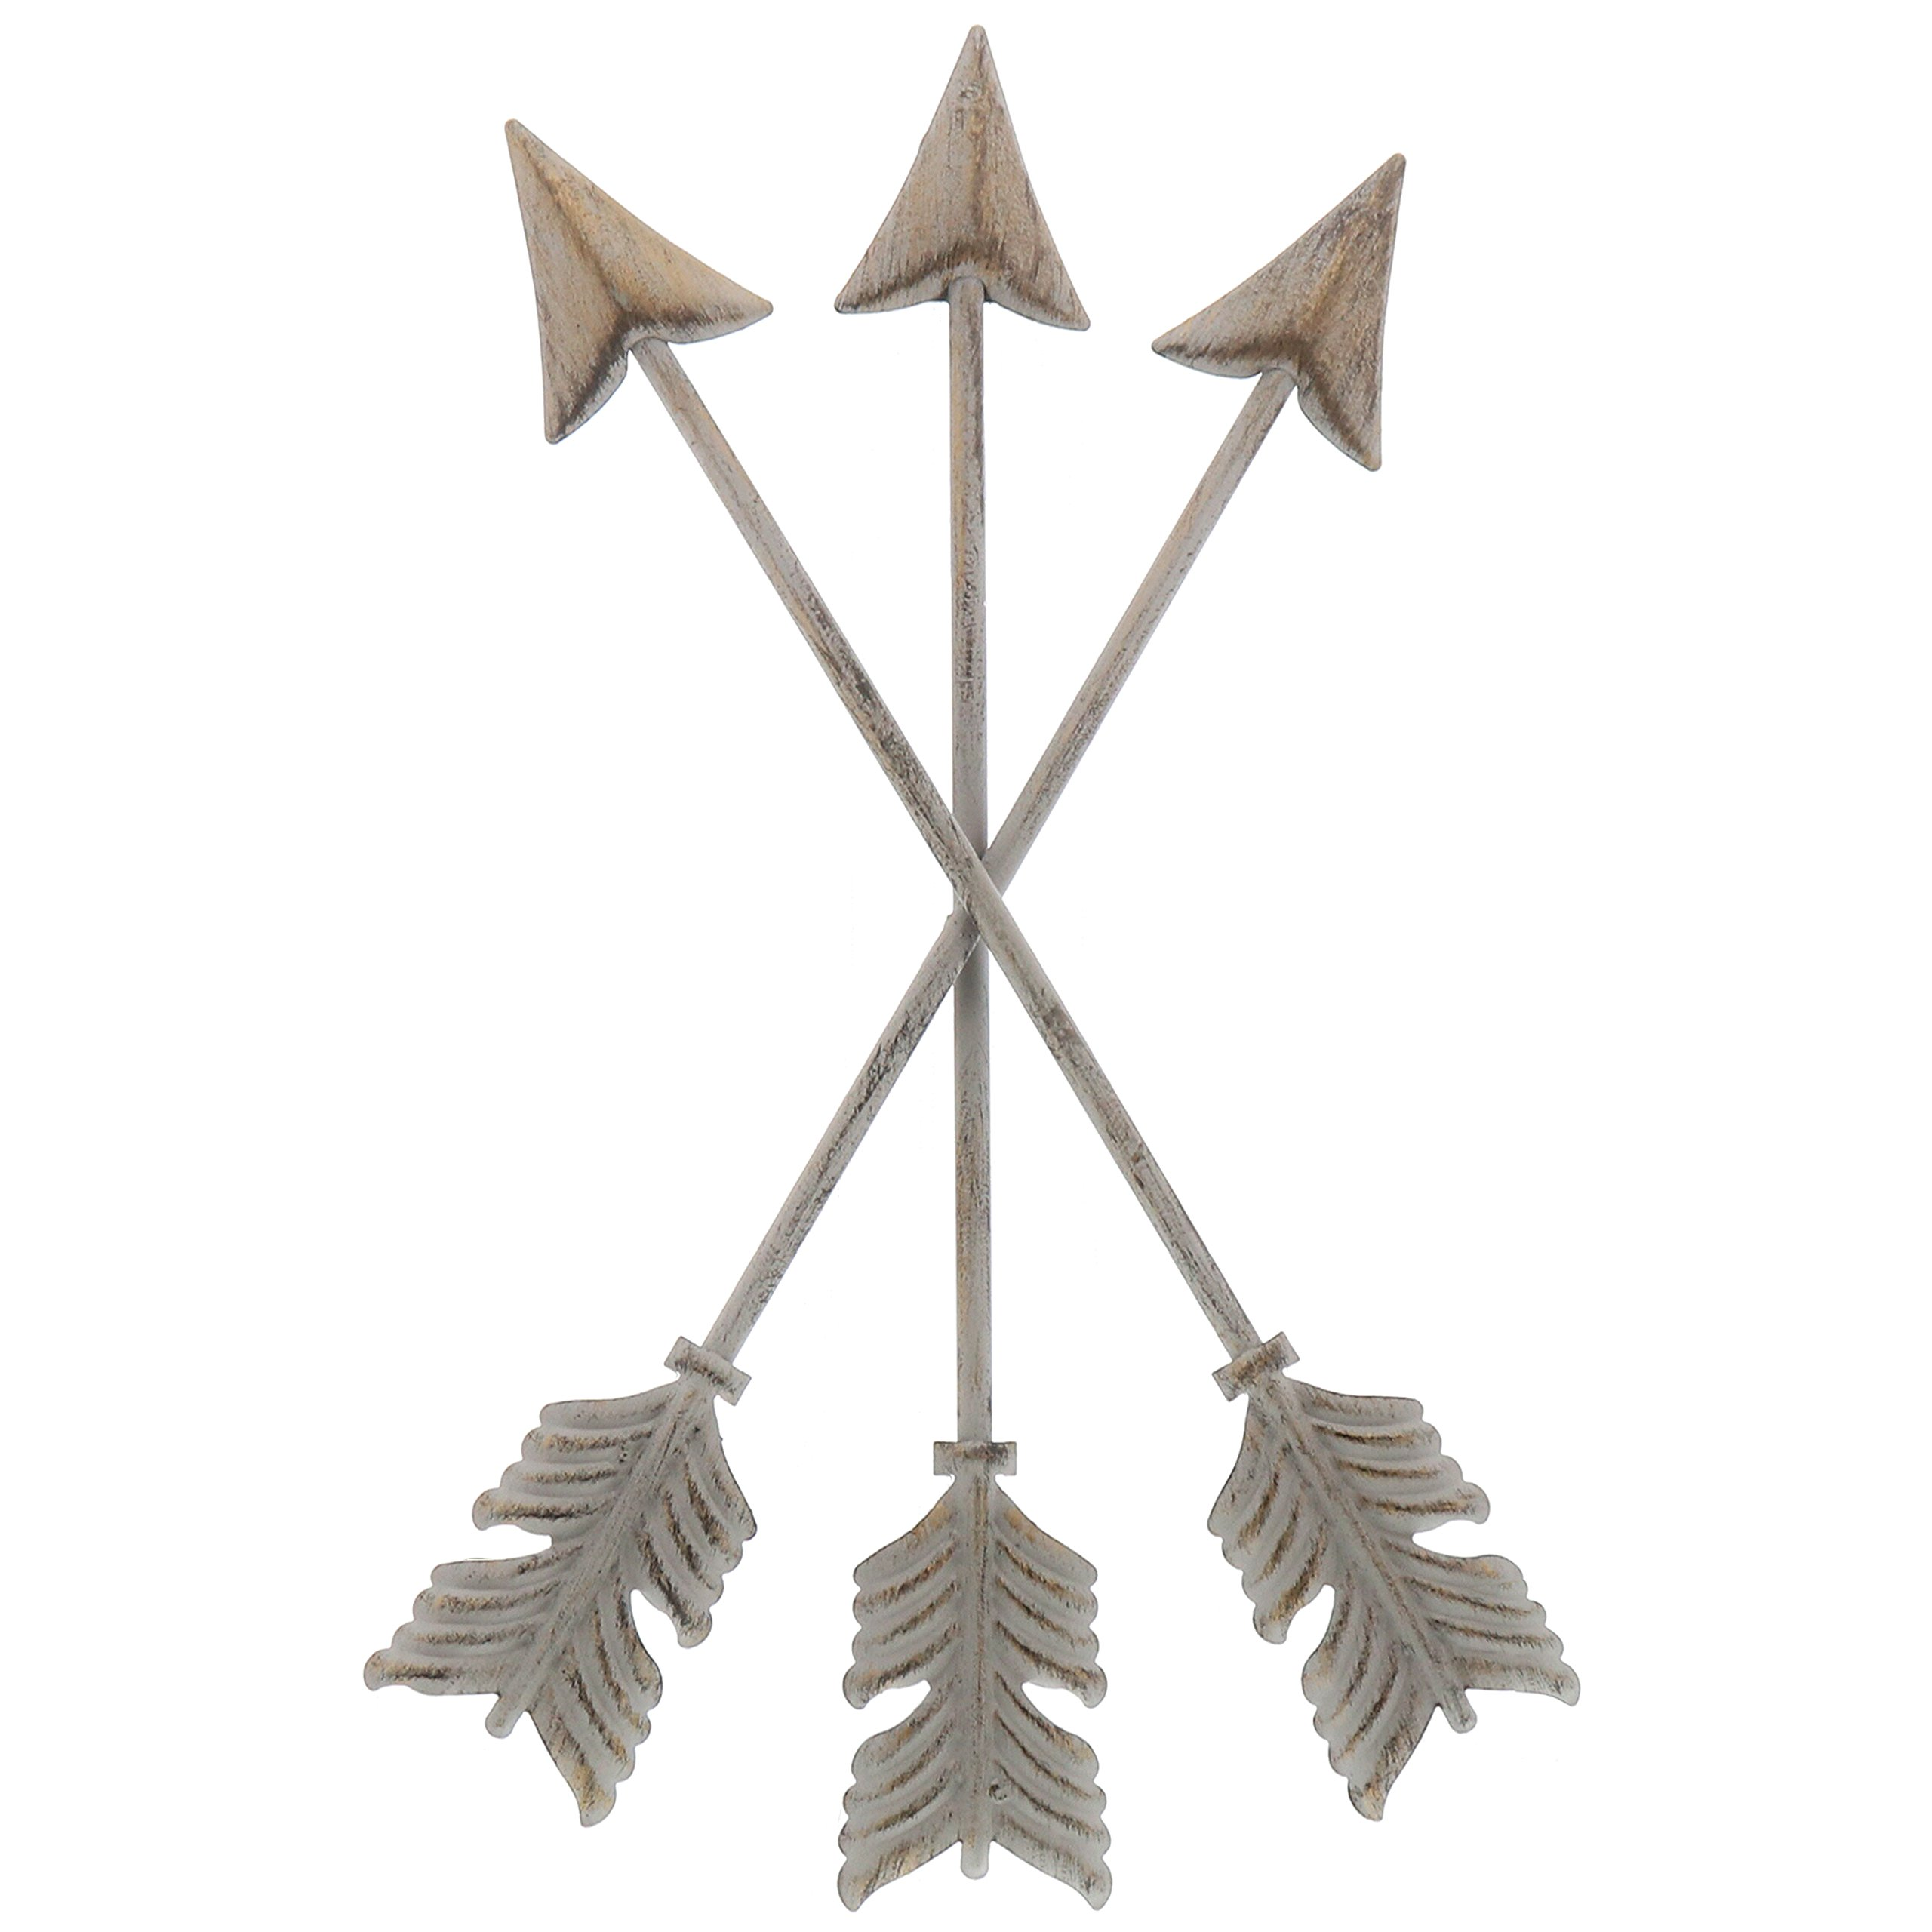 Barnyard Designs Metal Arrow Wall Decor, Rustic Native American Wall Art Arrows 13'' x 8.25'' by Barnyard Designs